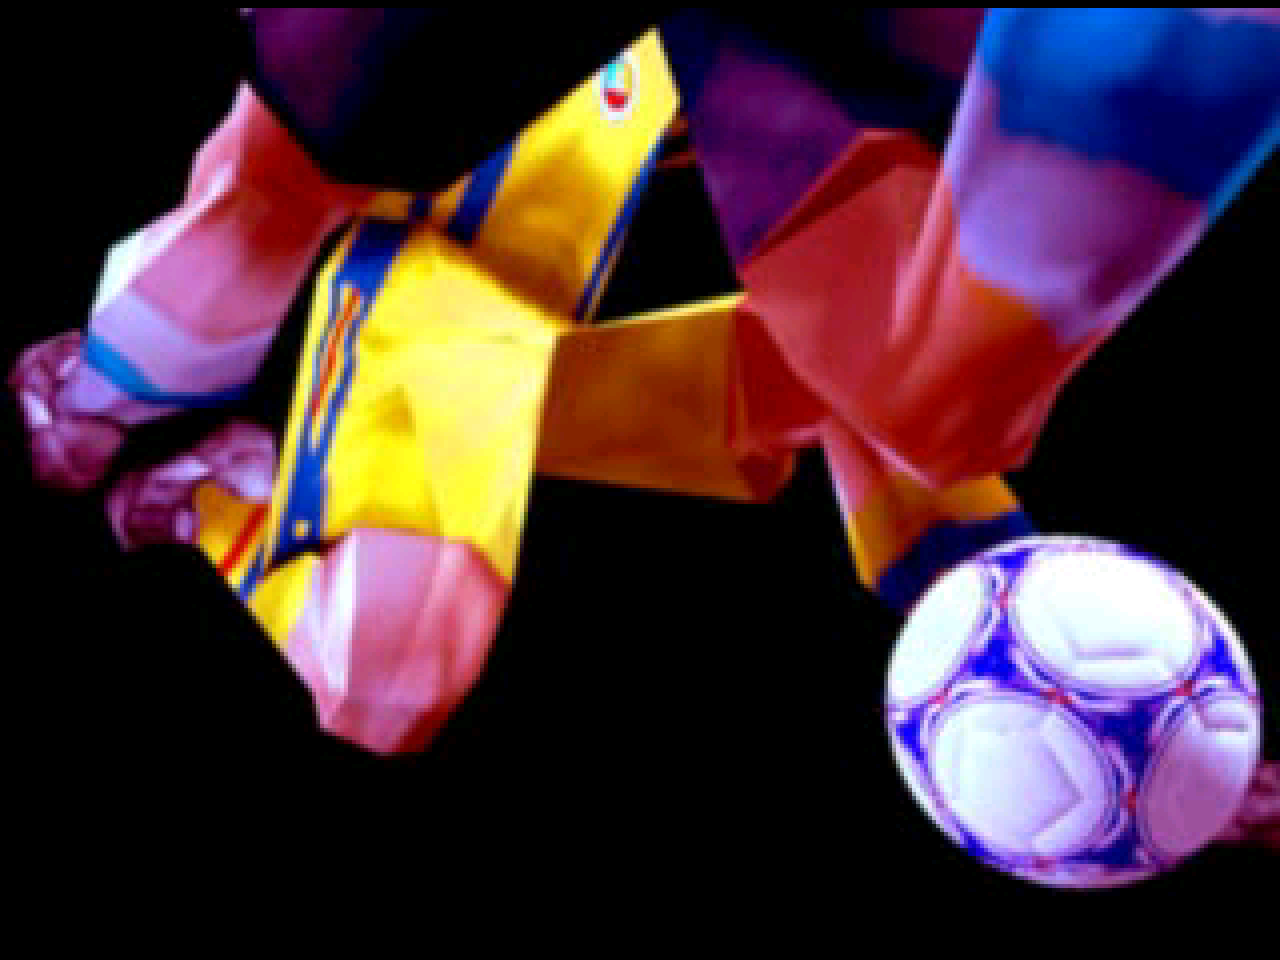 https://s3.eu-west-3.amazonaws.com/games.anthony-dessalles.com/World Cup 98 PS1 2020 - Screenshots/World Cup 98-201123-202234.png